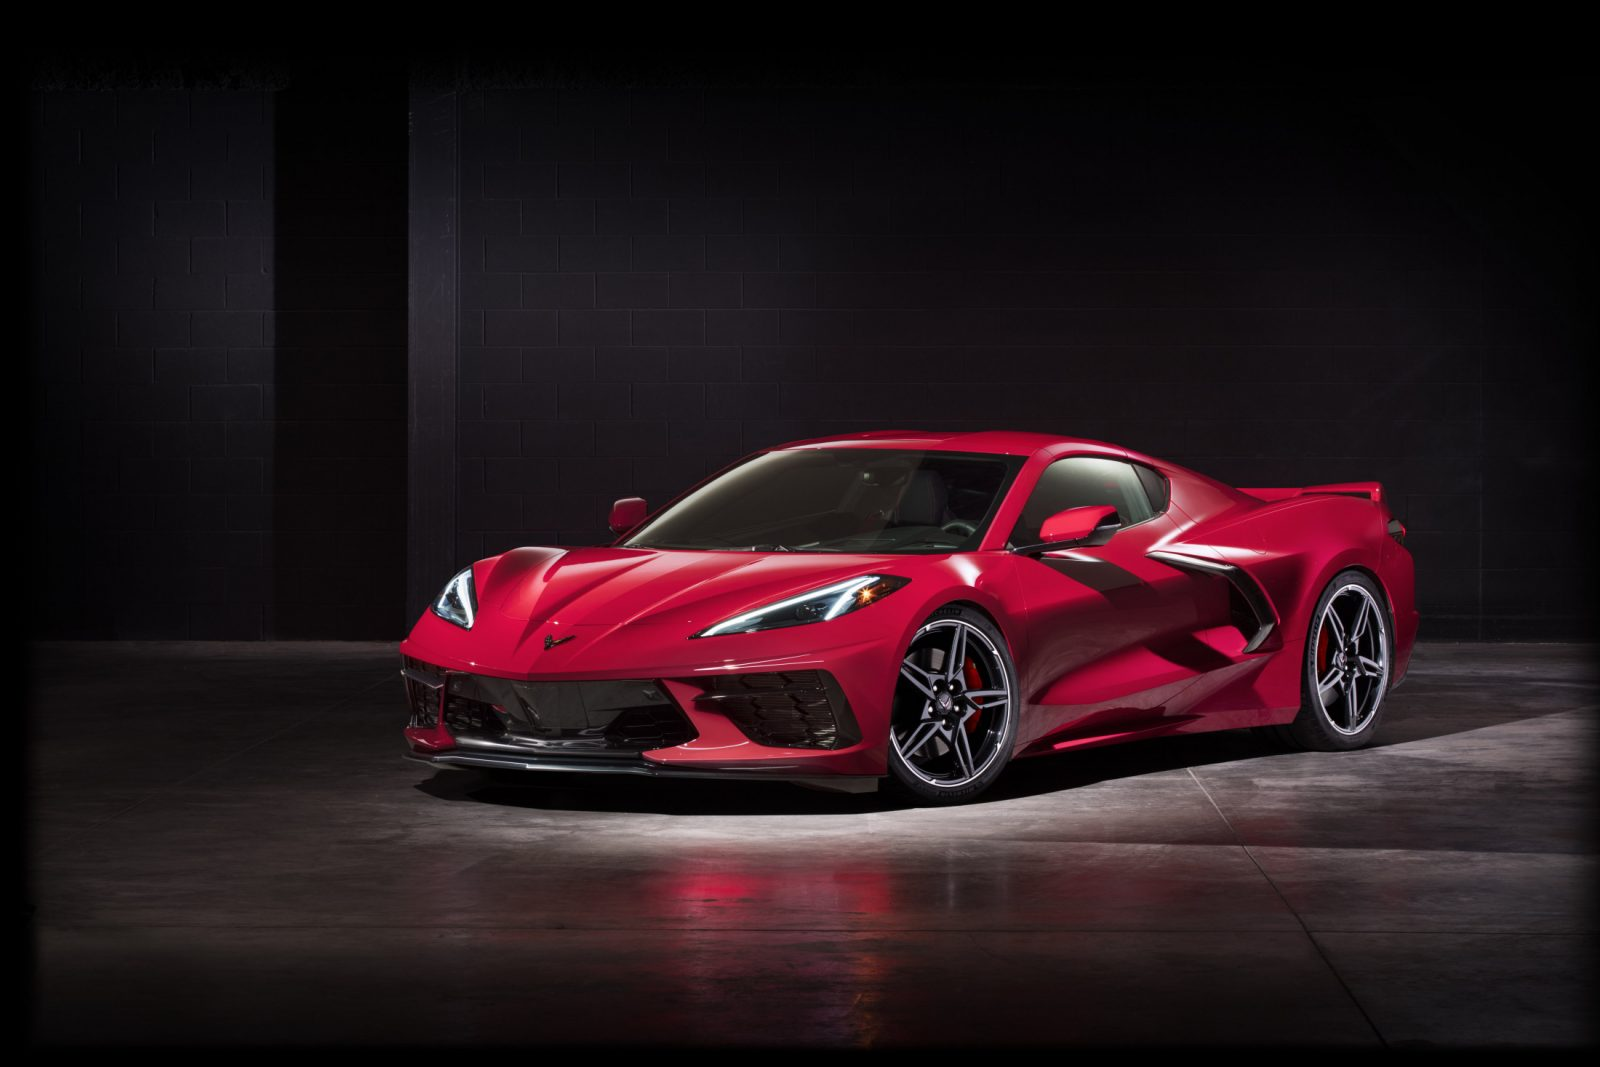 2020-Chevrolet-Corvette-Stingray-048